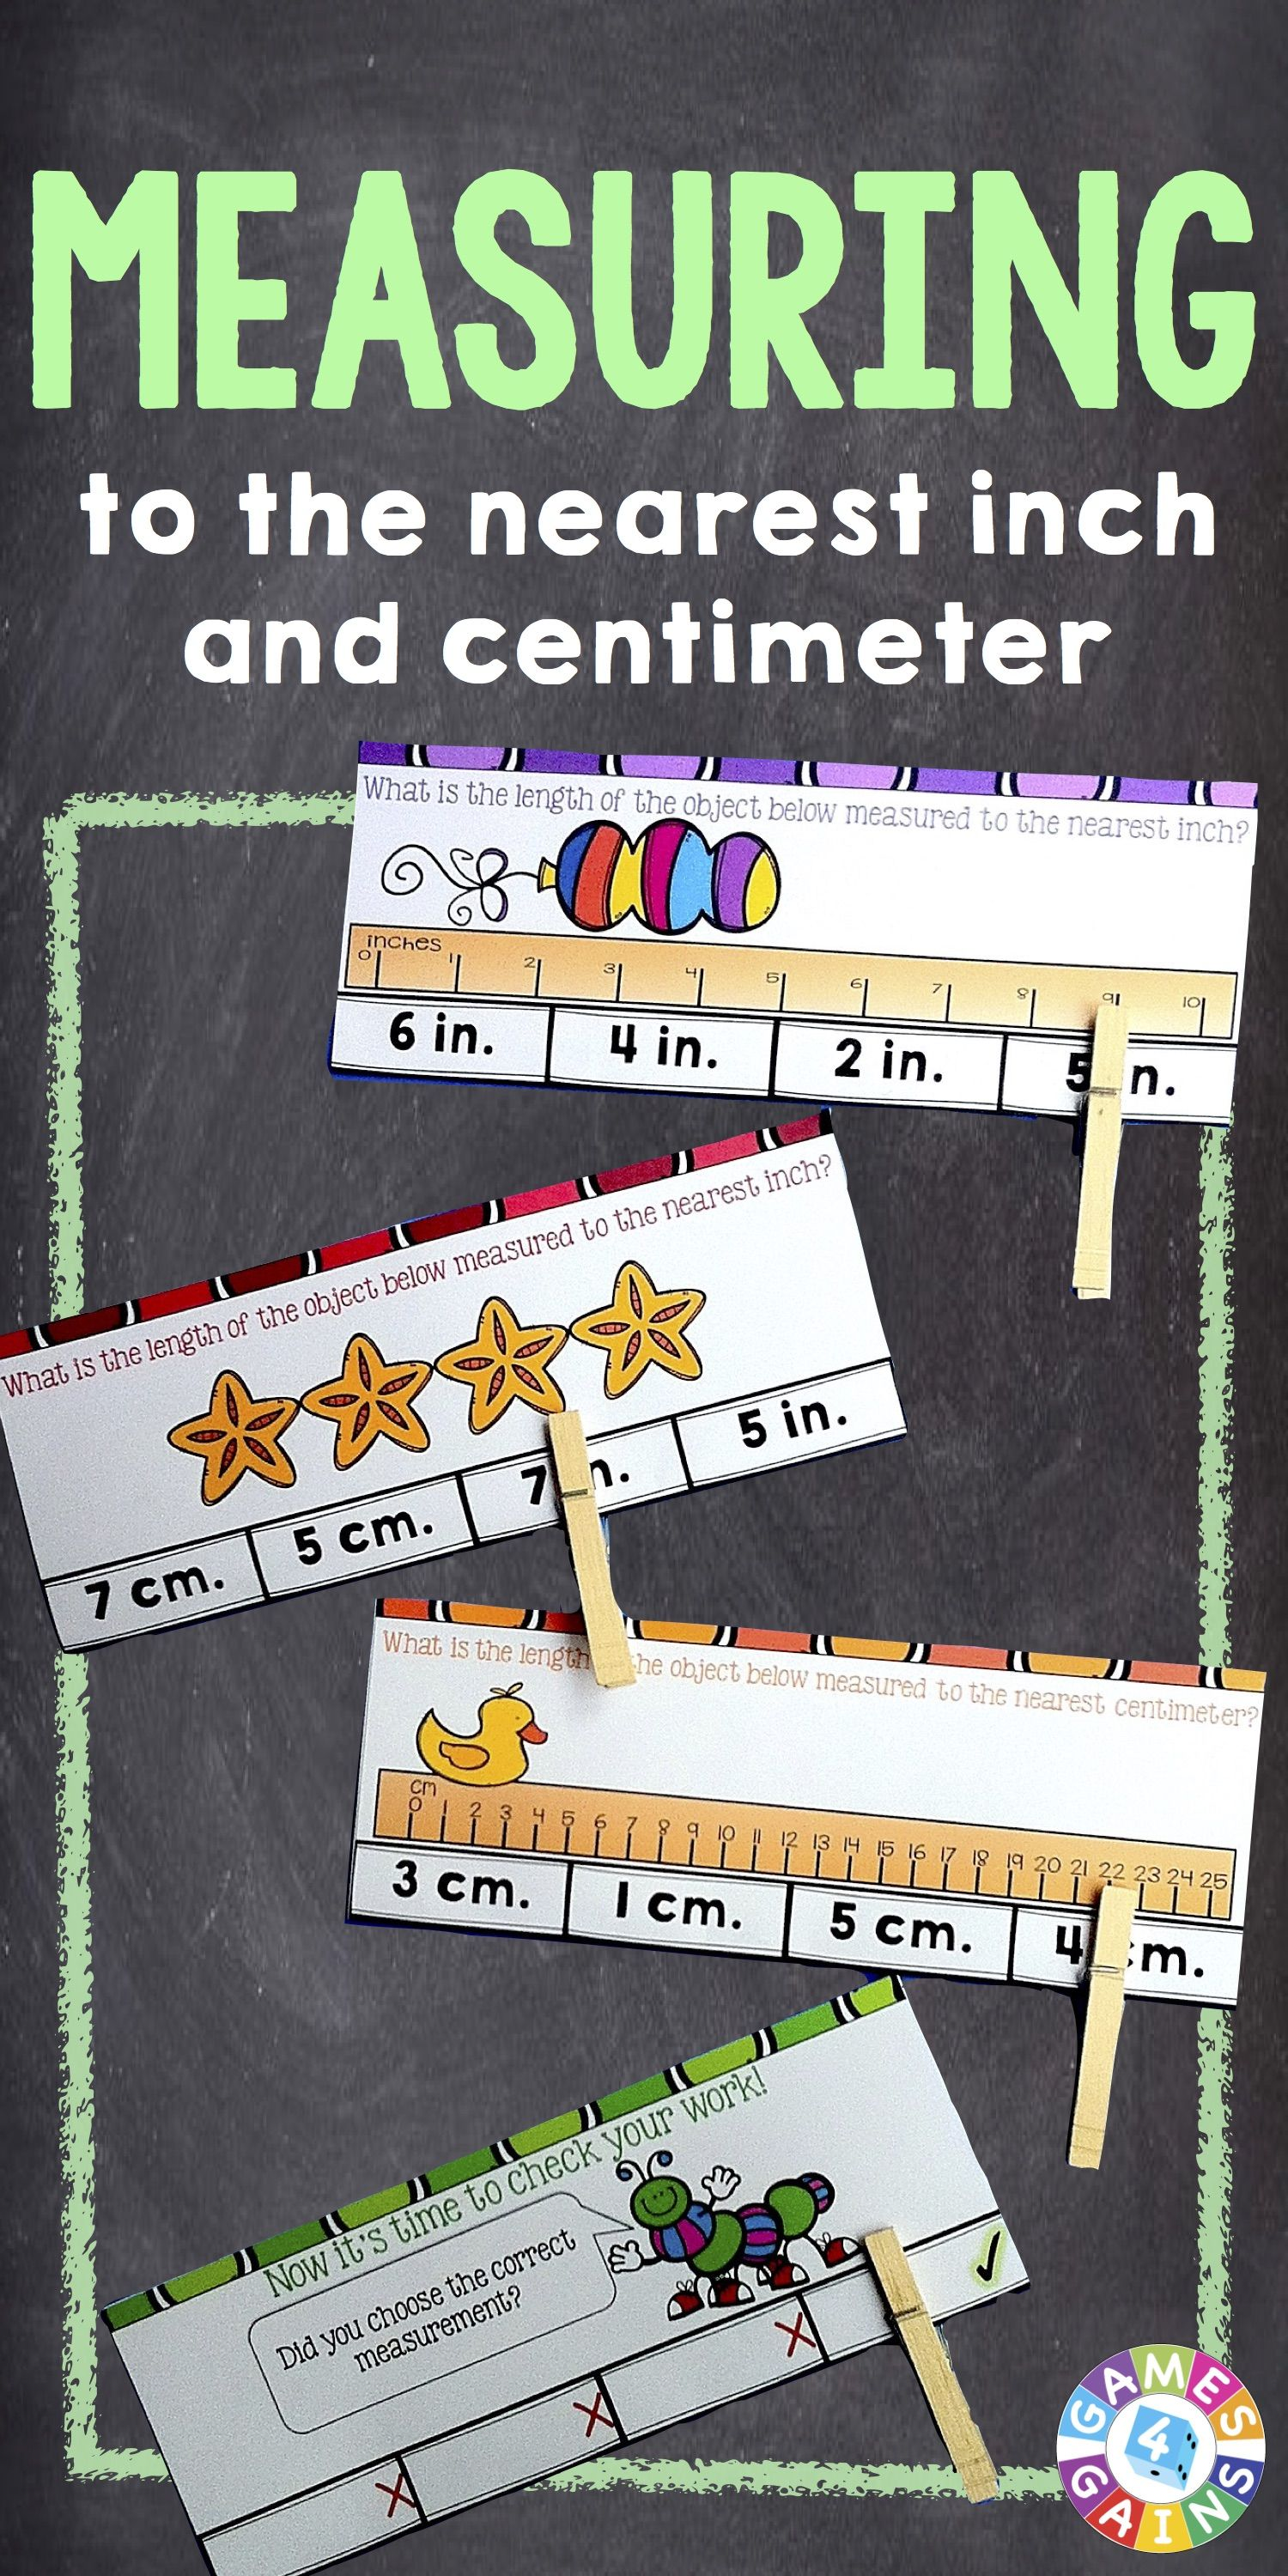 2nd Grade Measurement Measuring Length In Inches Amp Centimeters 2 1 2 2